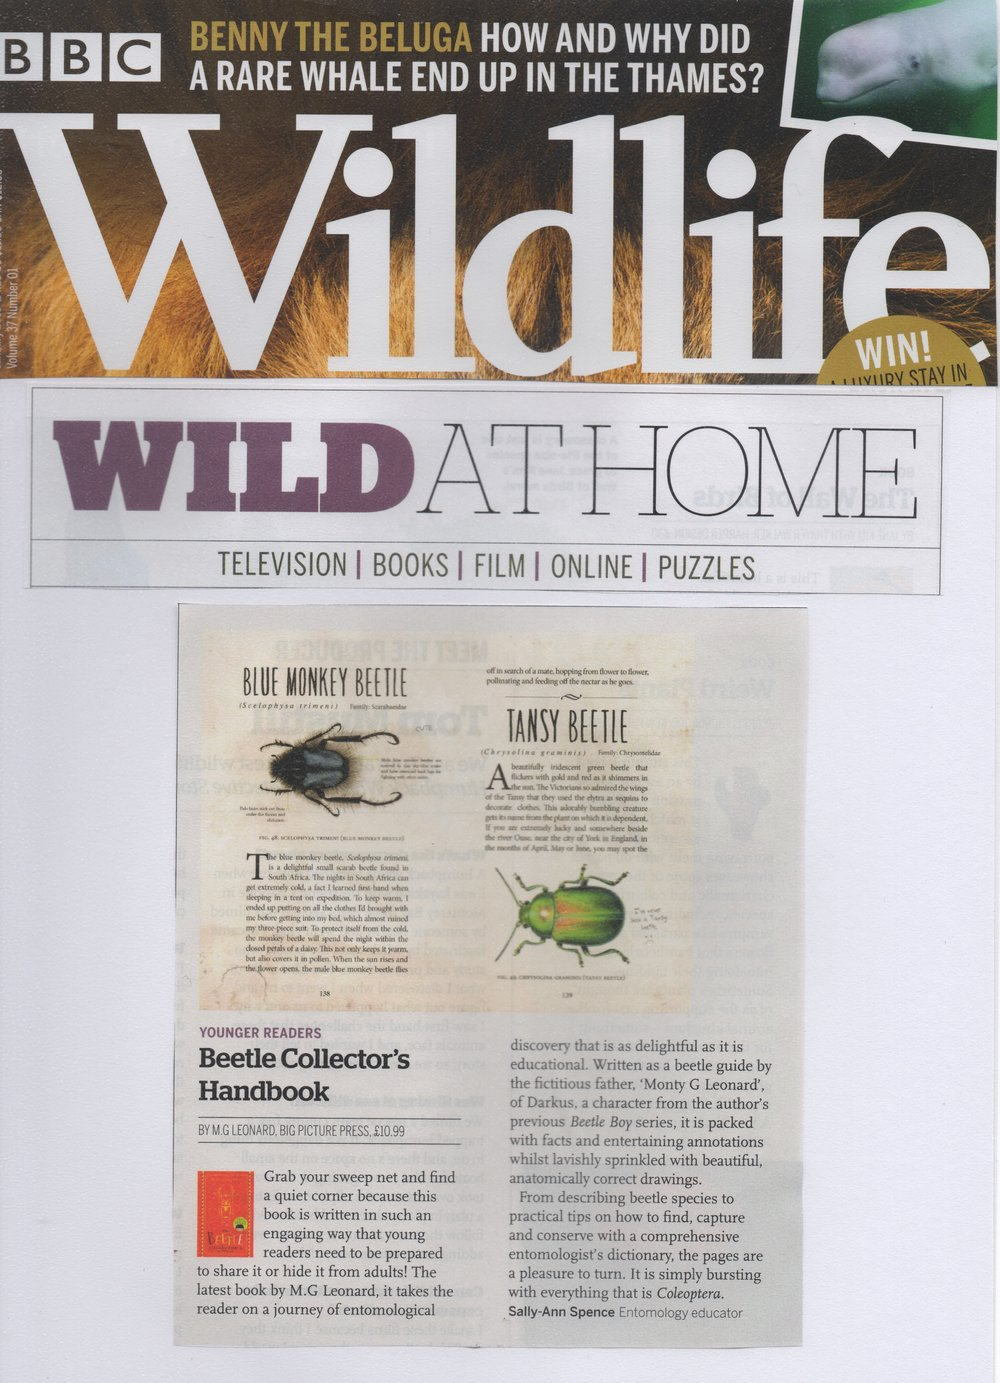 BCHB_BBCWildlife_ReviewJan2019.jpeg